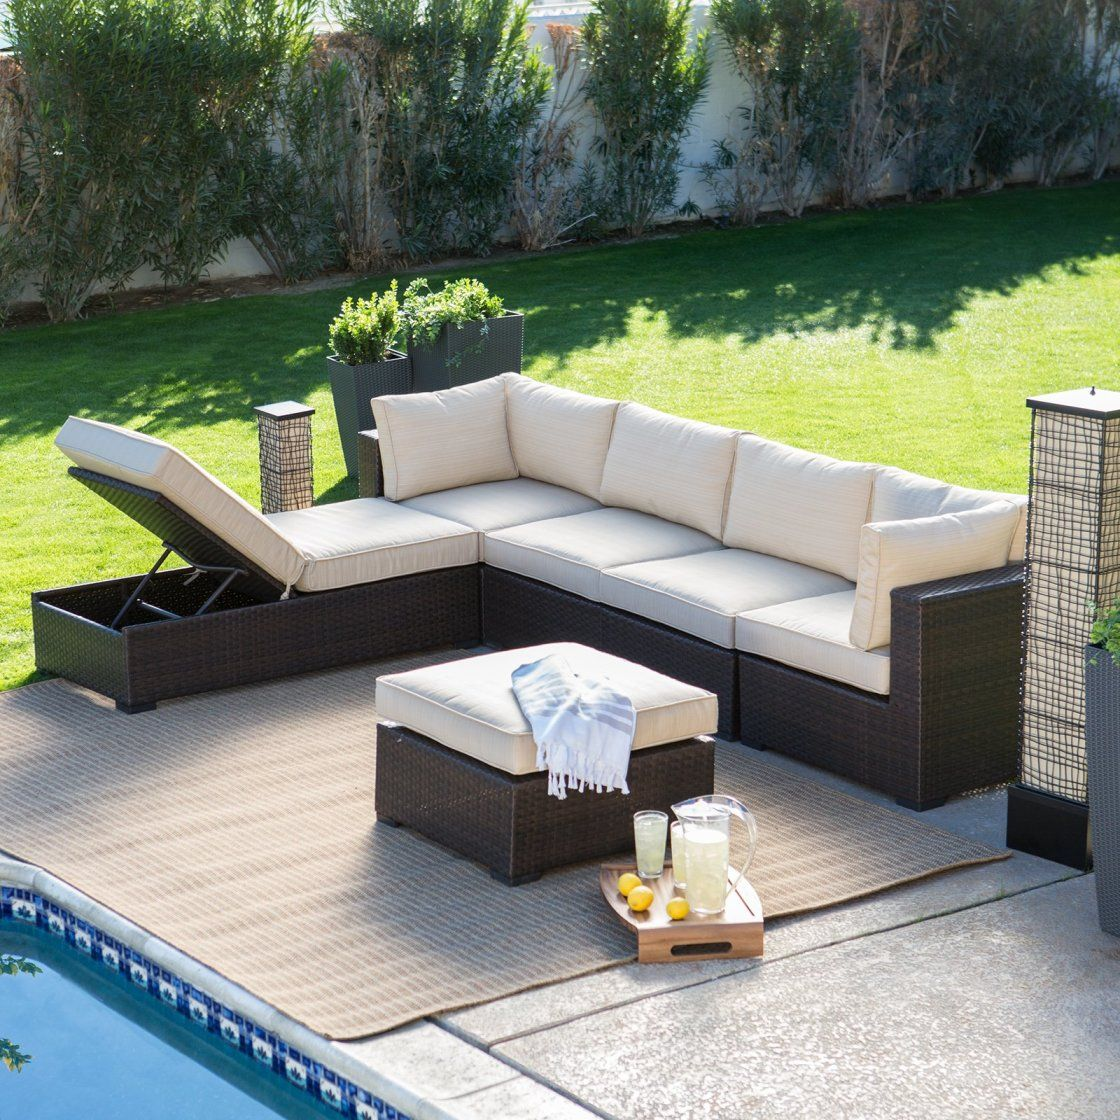 Cheap L Shaped Rattan Sofa Endearing Inspiring Outdoor Sectional Sofa For Edge Garden Pool